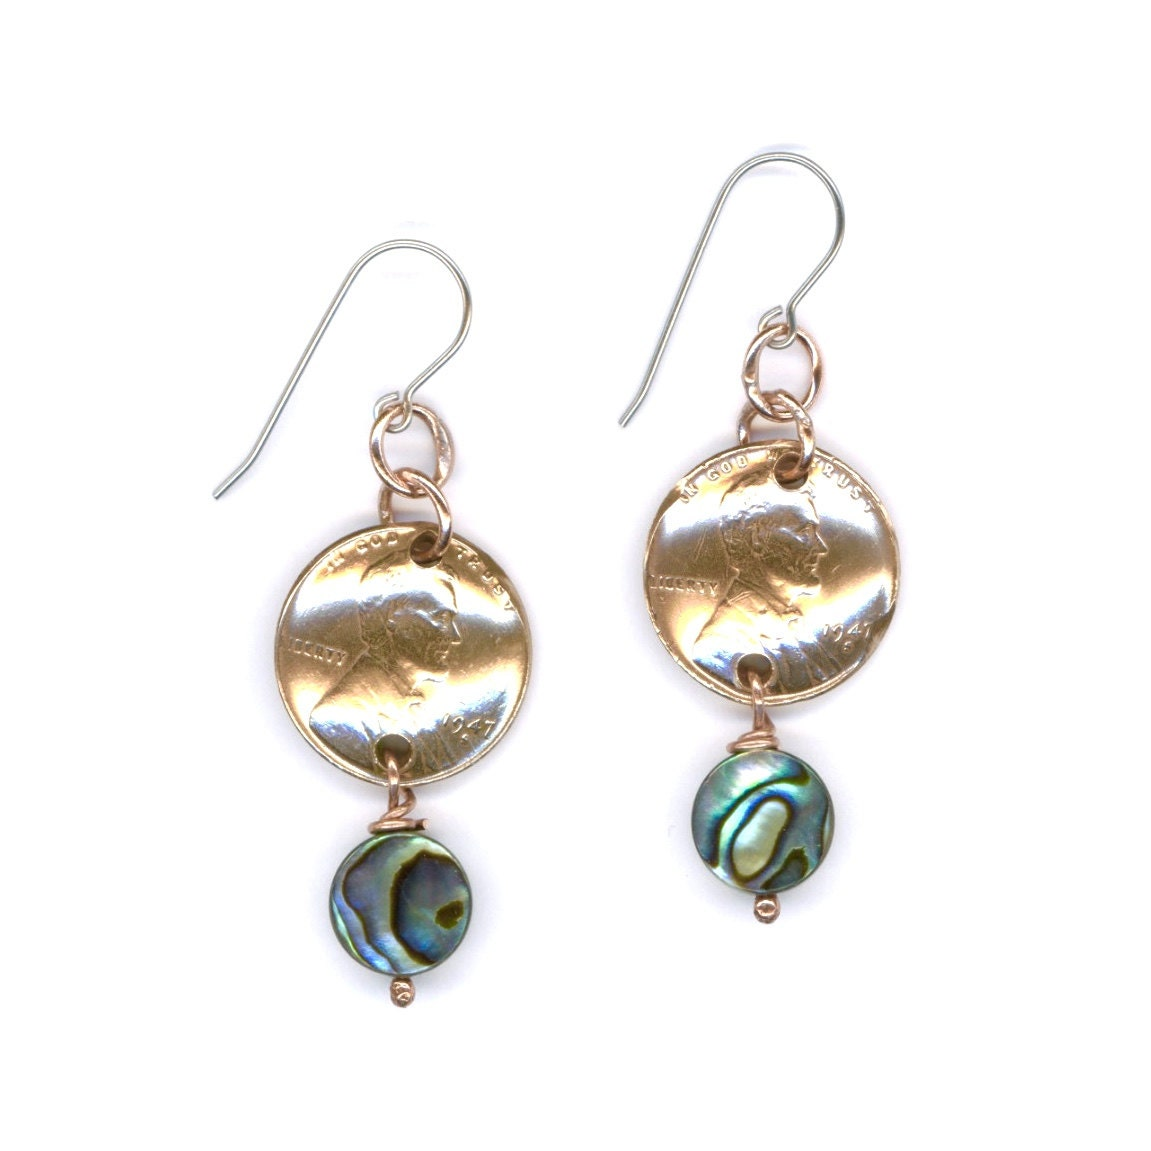 70th Birthday Gift Jewelry 1947 Penny Earrings 70th Jewelry